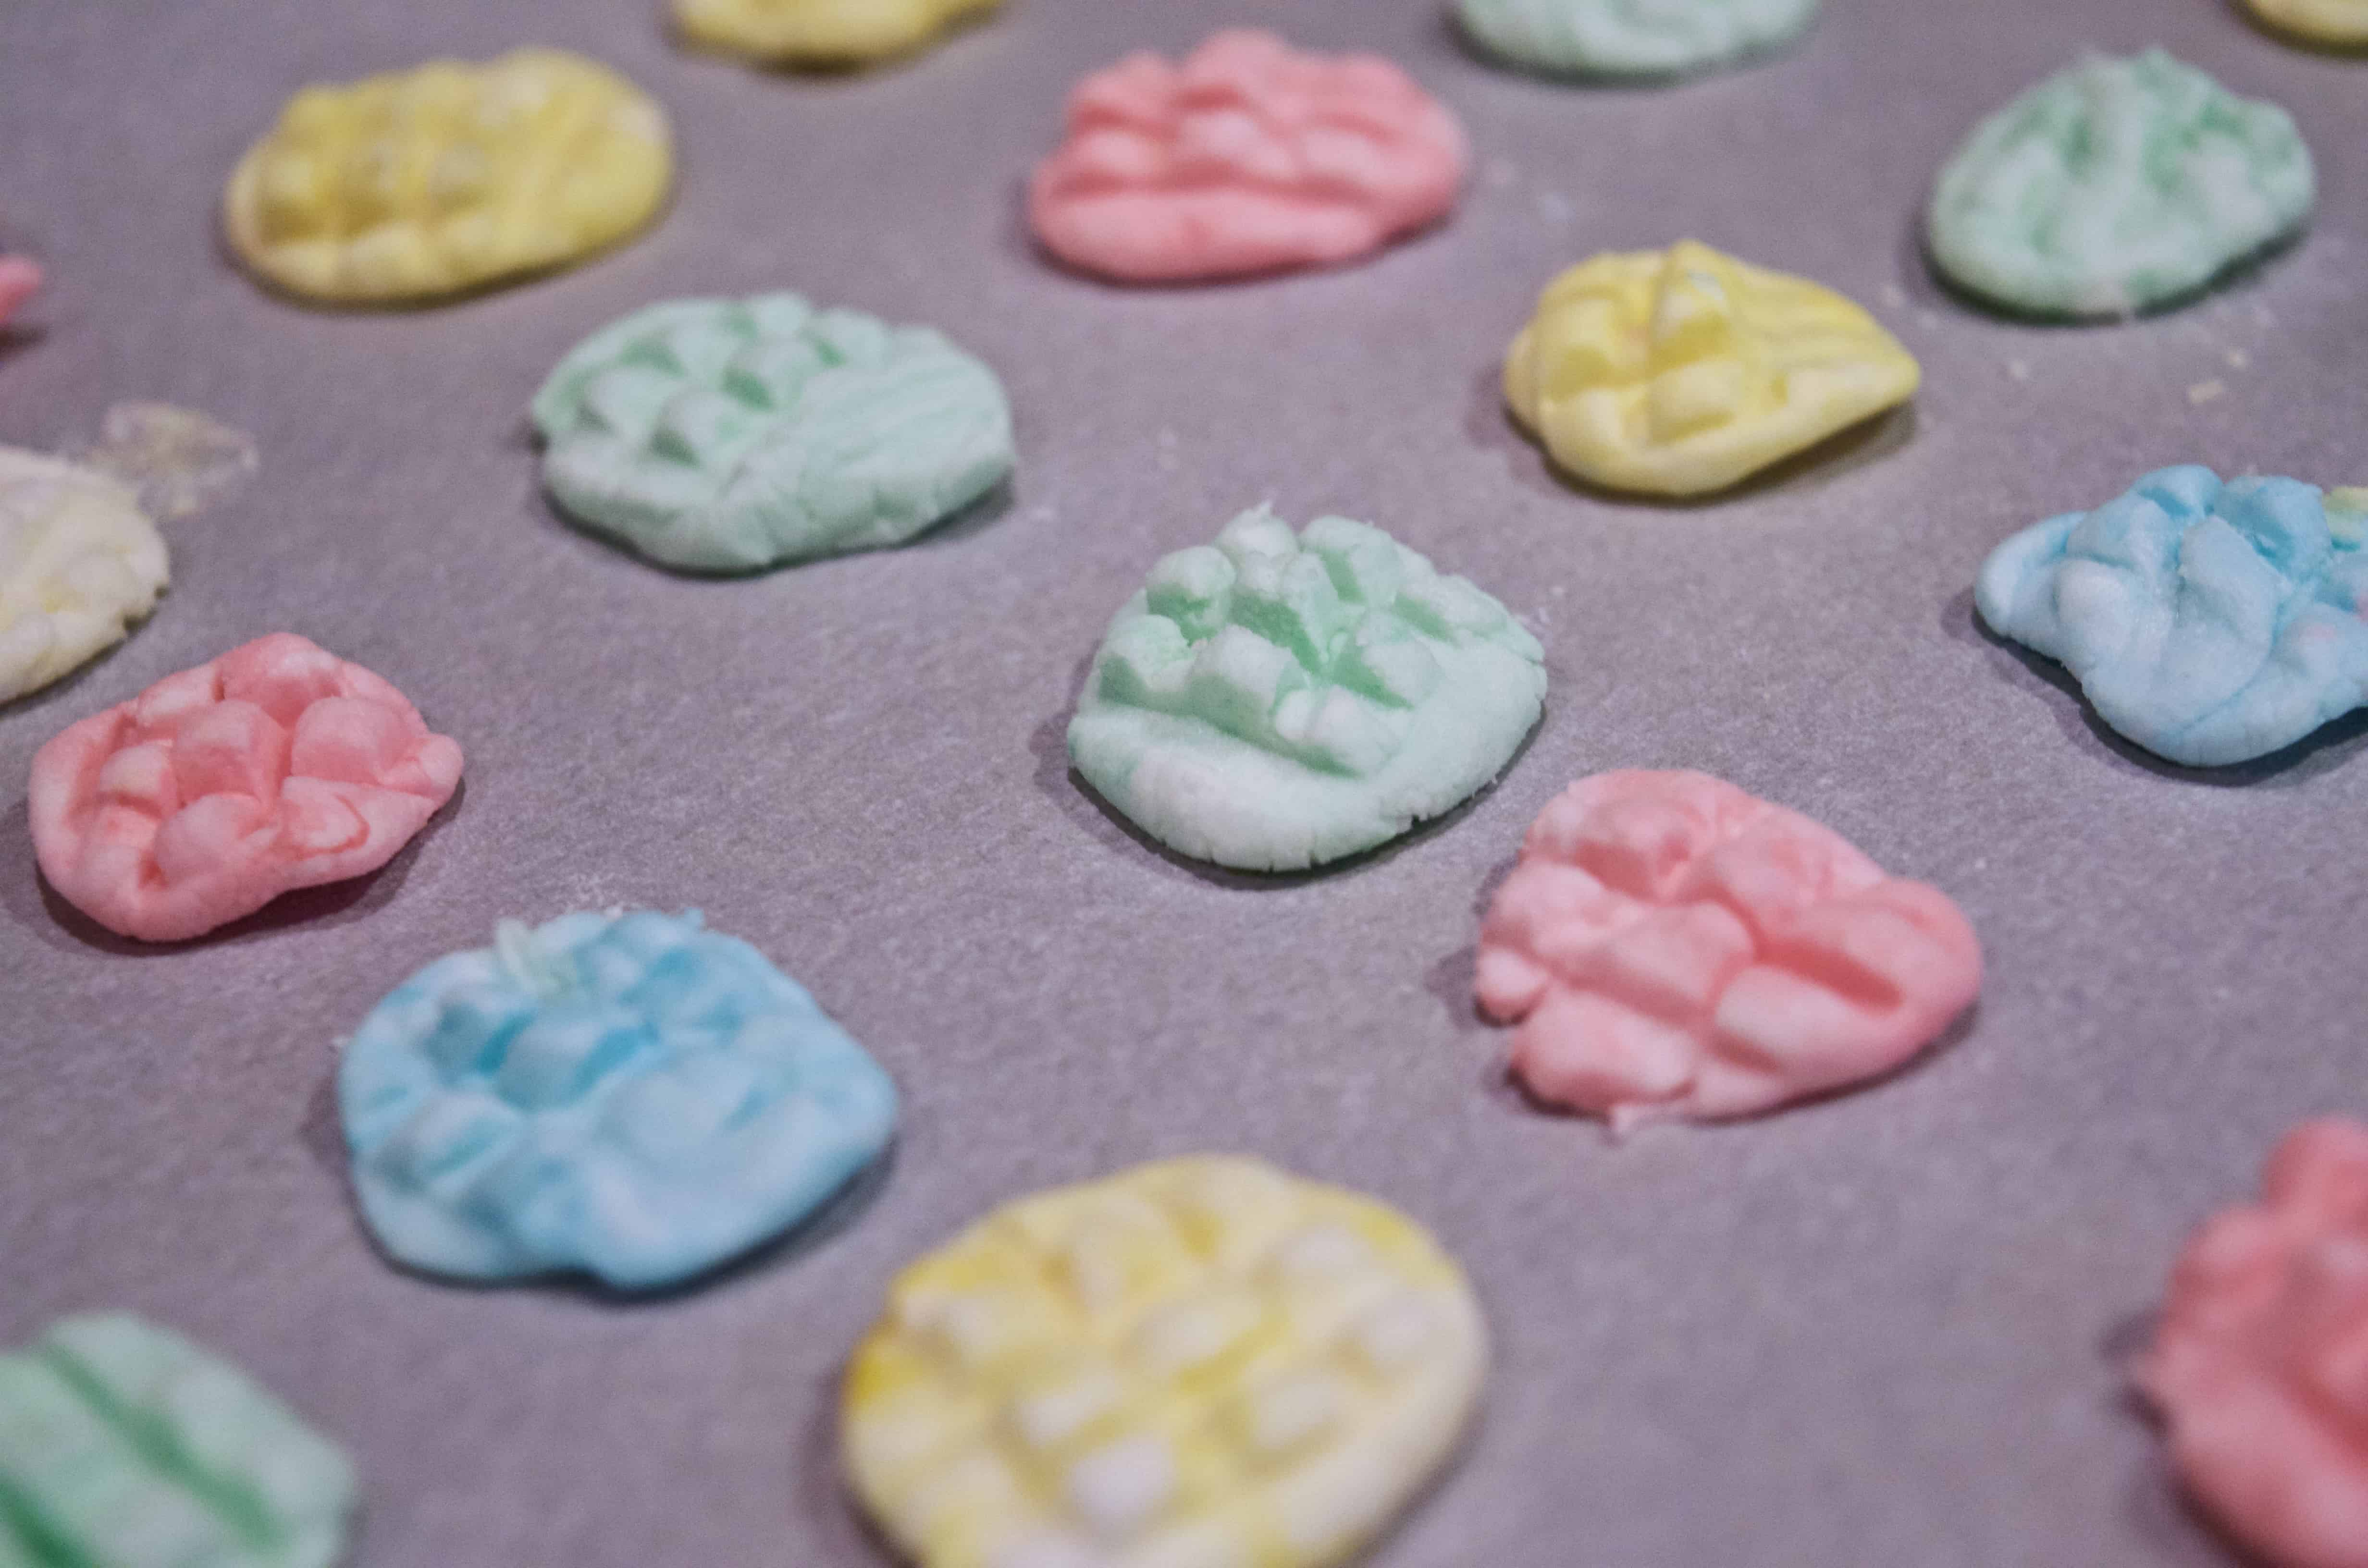 Creamy Candy Melts